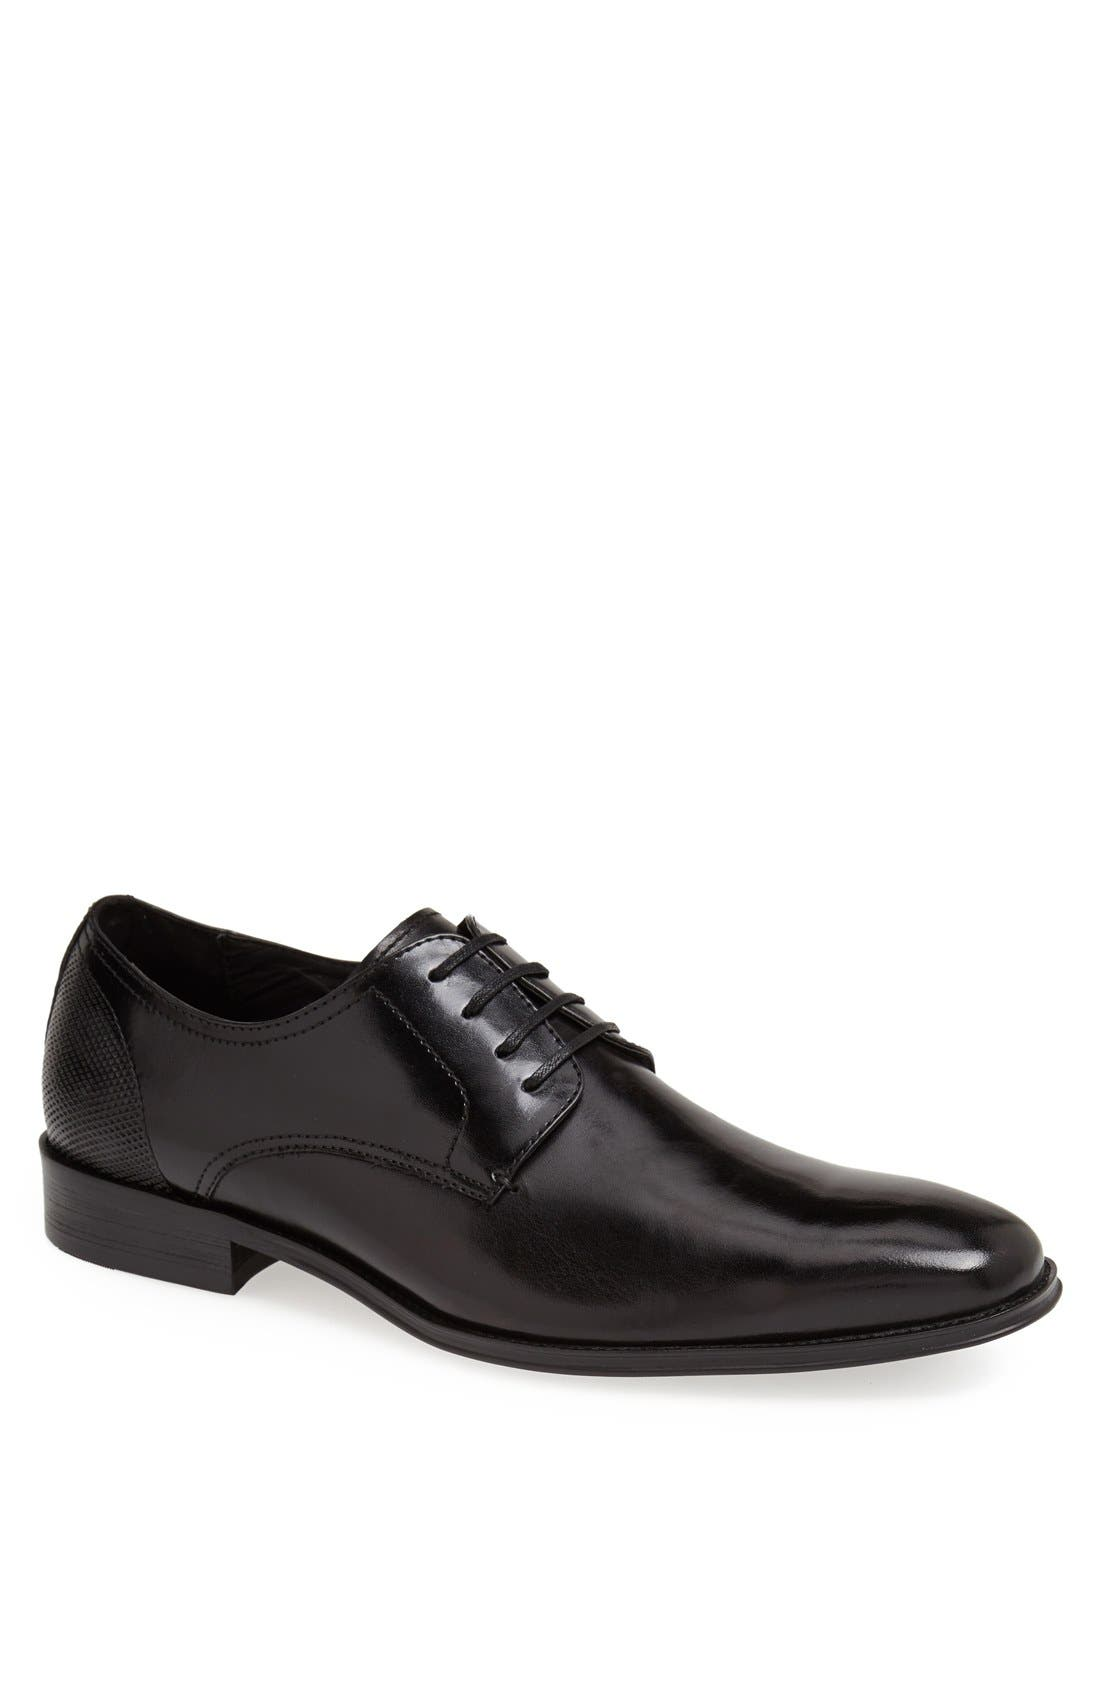 Alternate Image 1 Selected - Kenneth Cole Reaction 'One Love' Plain Toe Derby